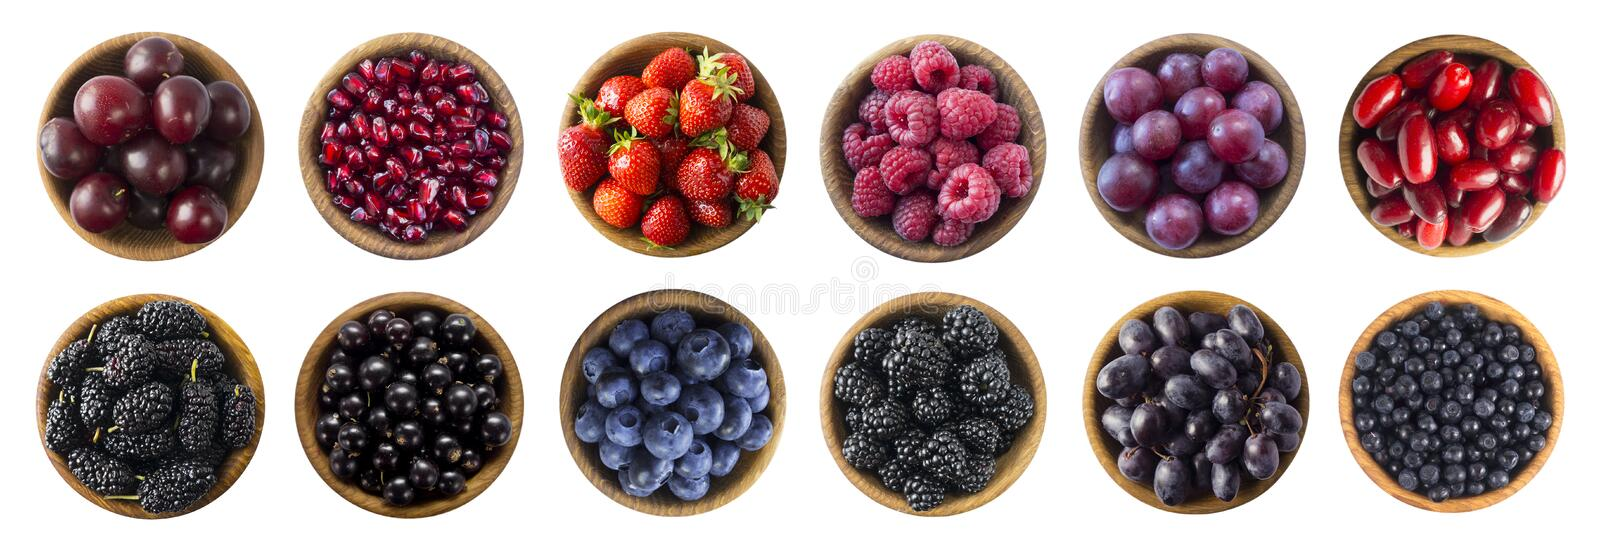 Red and black-blue food.  Raspberry, strawberry, currant, blueberry, plum, grape, pomegranate, mulberry, bilberry and blackberry. stock photography